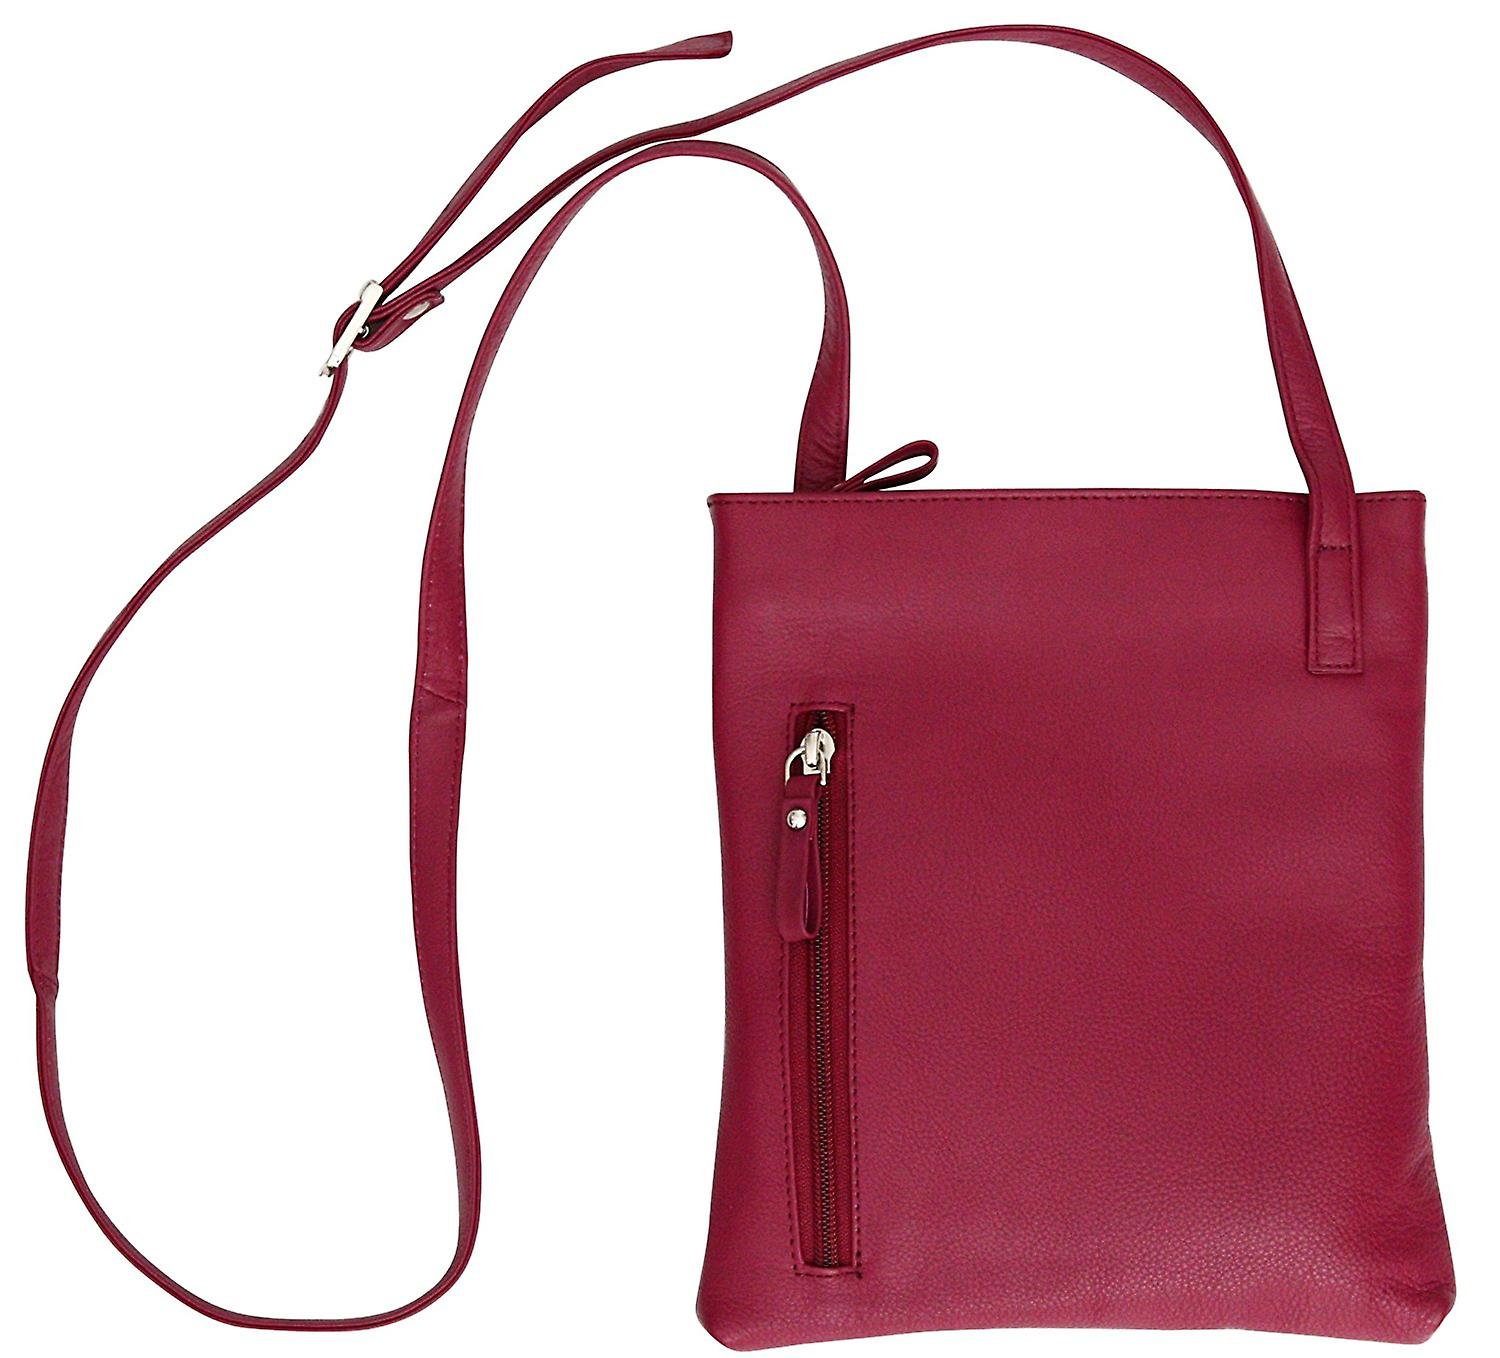 Luxury Genuine Leather Ladies Cross Body Bag Small Hand Bag Shoulder Case With Dust Bag